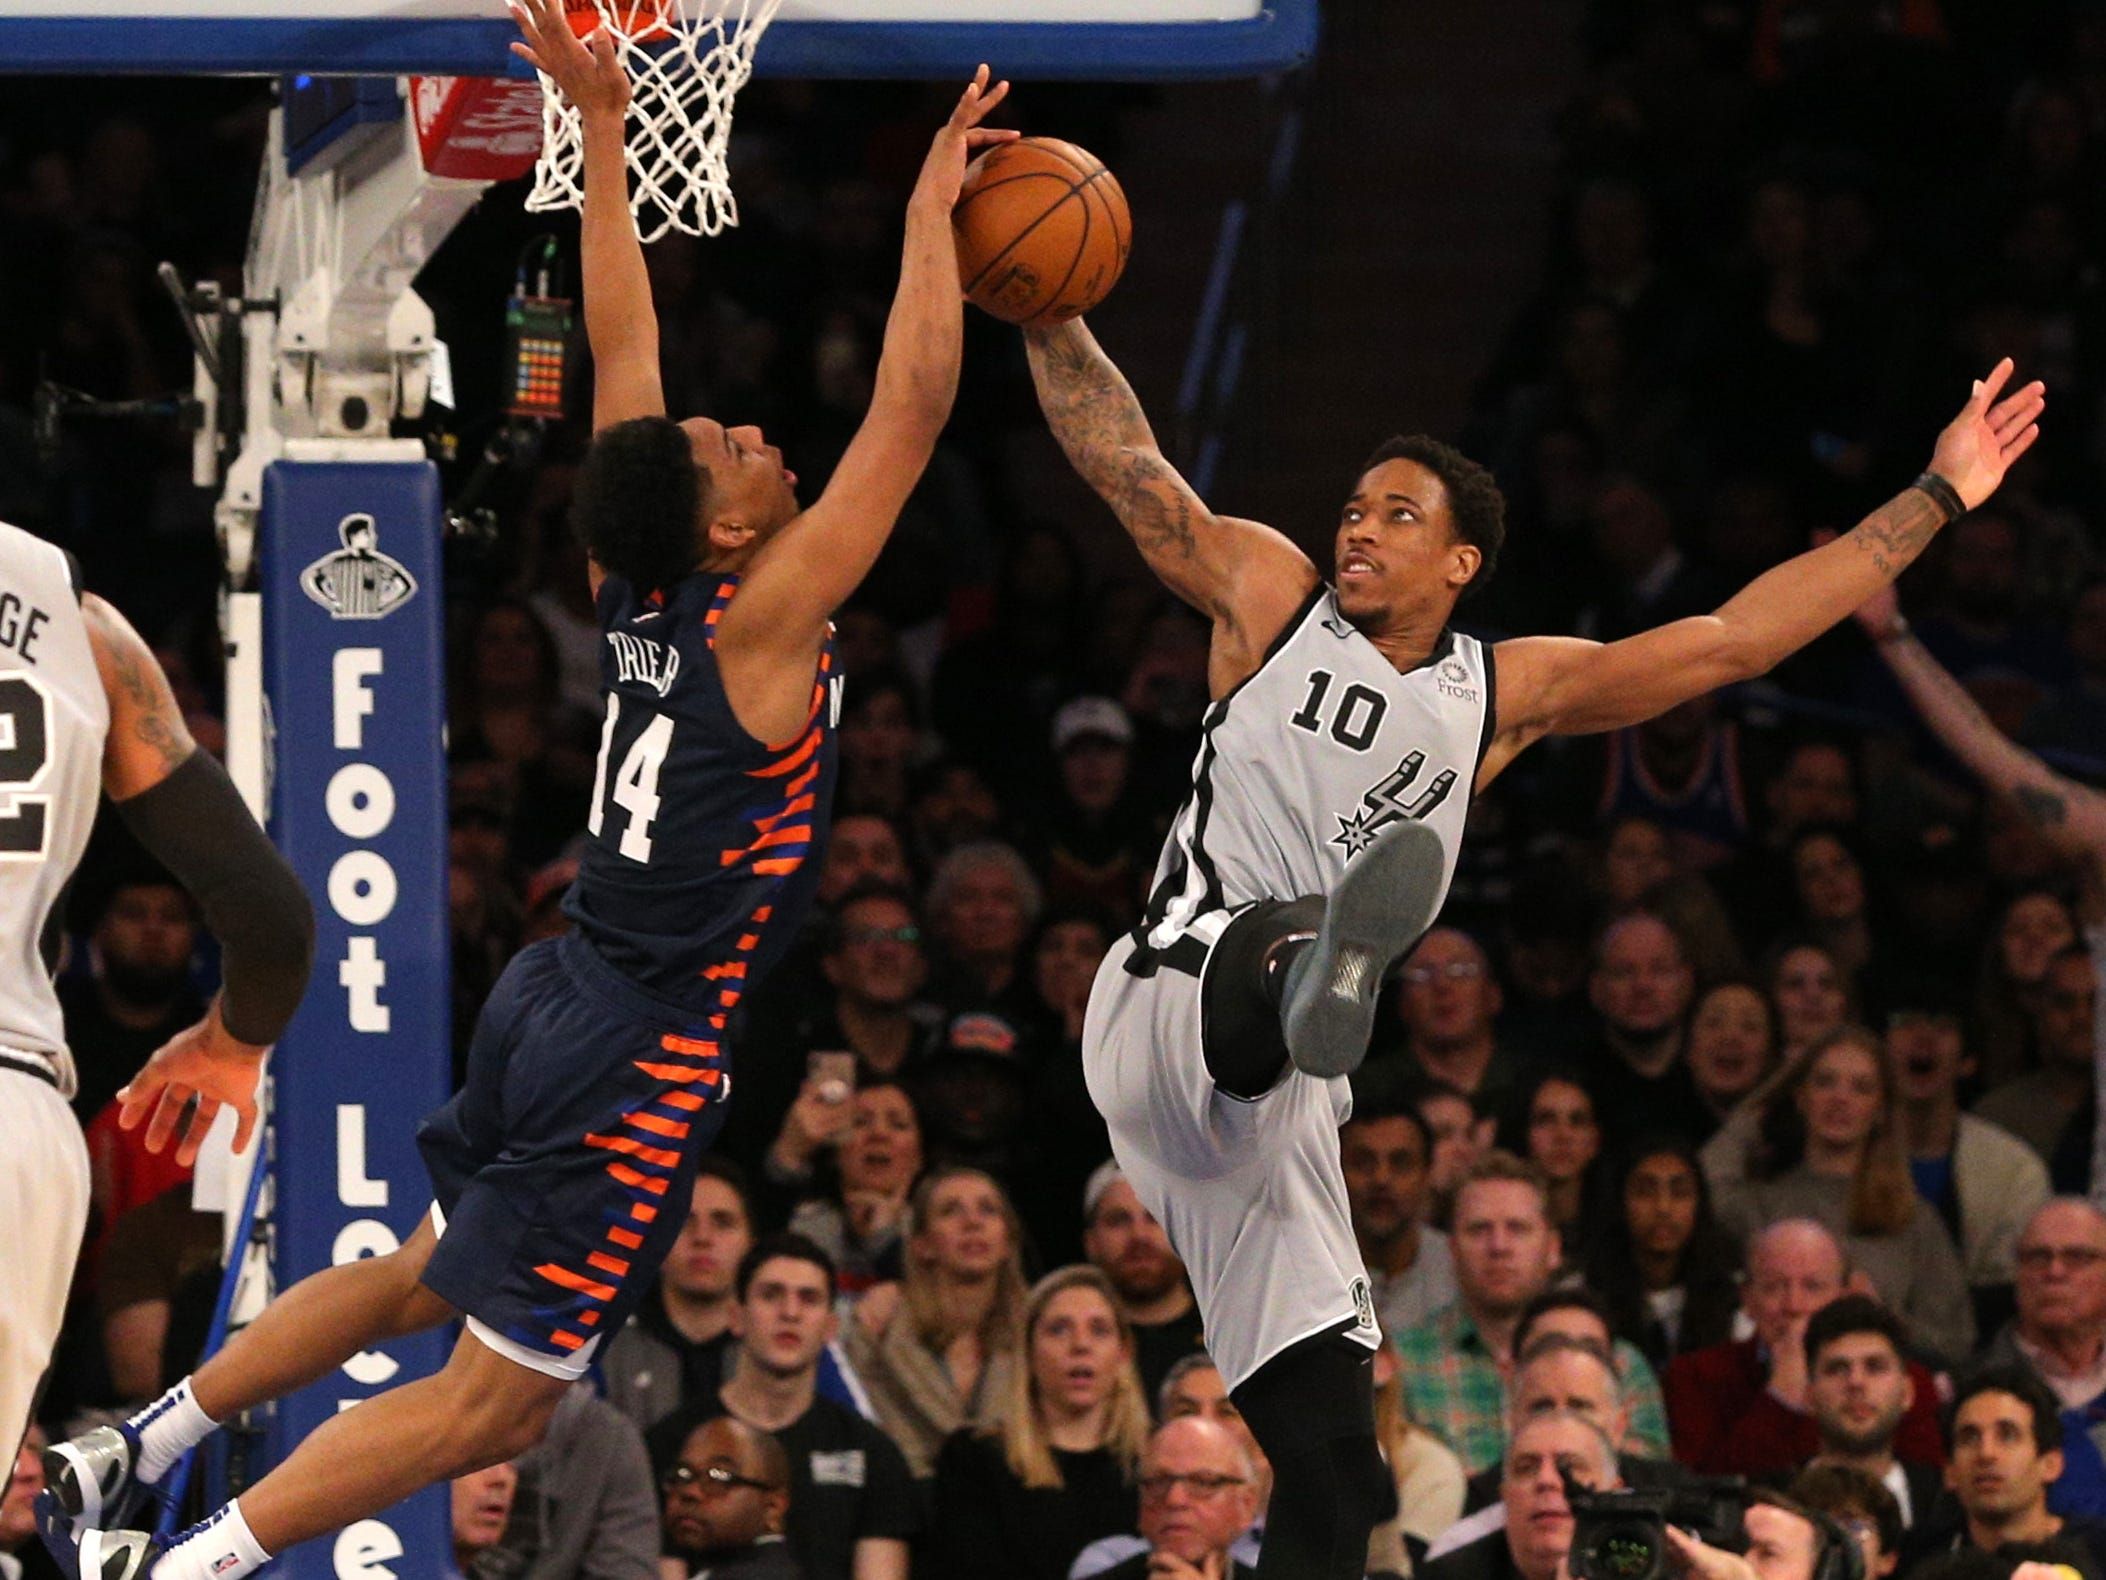 Feb. 24: Spurs guard DeMar DeRozan fouls Knicks guard Allonzo Trier (14) on a wilde drive to the hoop at Madison Square Garden.